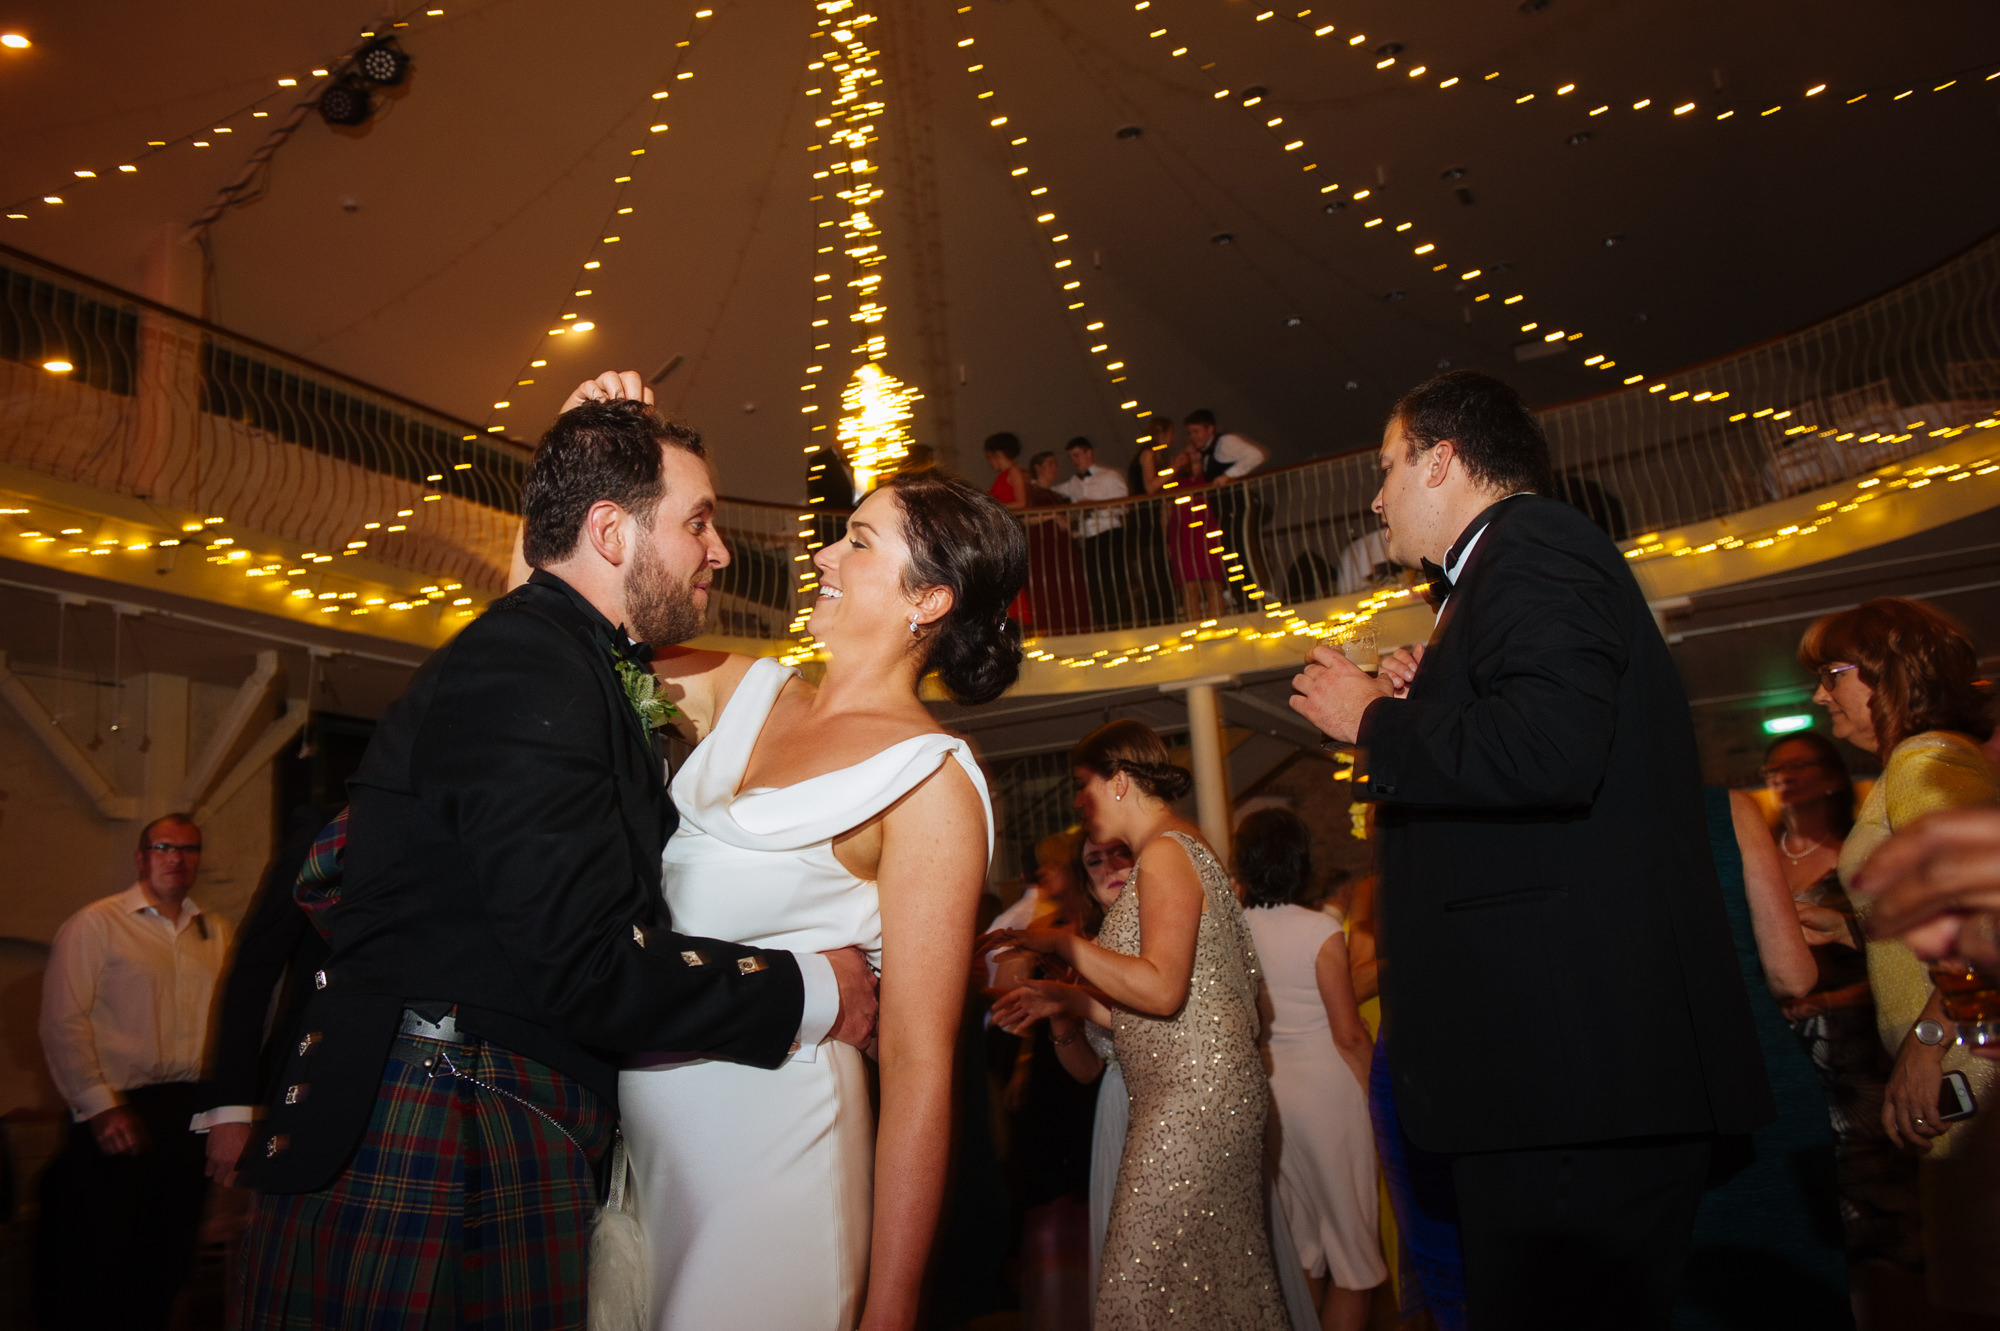 wedding dancing at the Grainstore, Ballymaloe